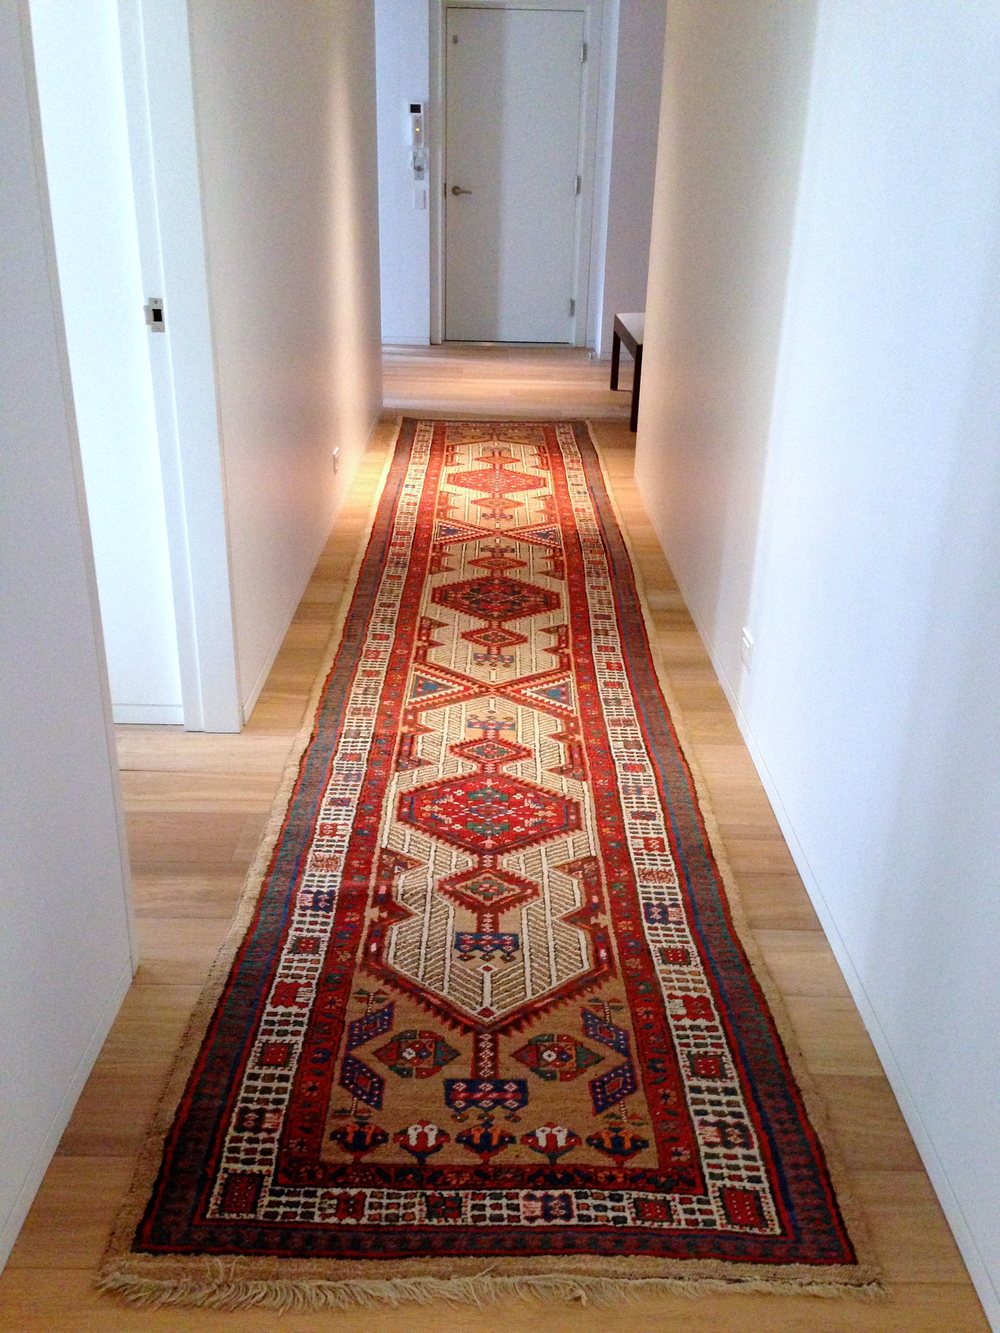 "Sarab Wool in client's home as a runner 3'-0"" x 17'-0""   This fits the warm oak wood floor and bring colors into the long corridor."